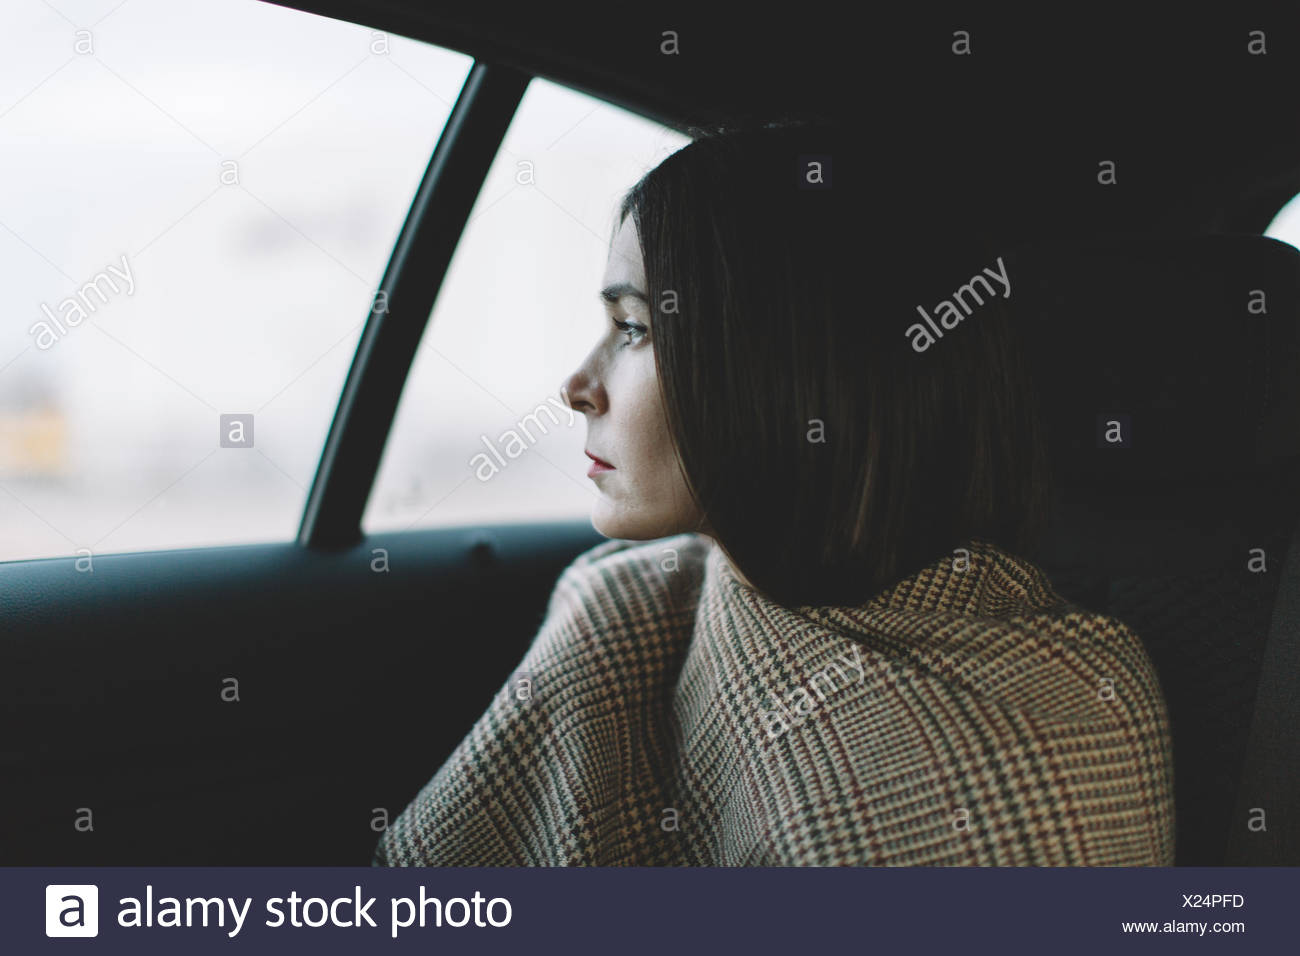 Woman sitting in car looking through the window - Stock Image